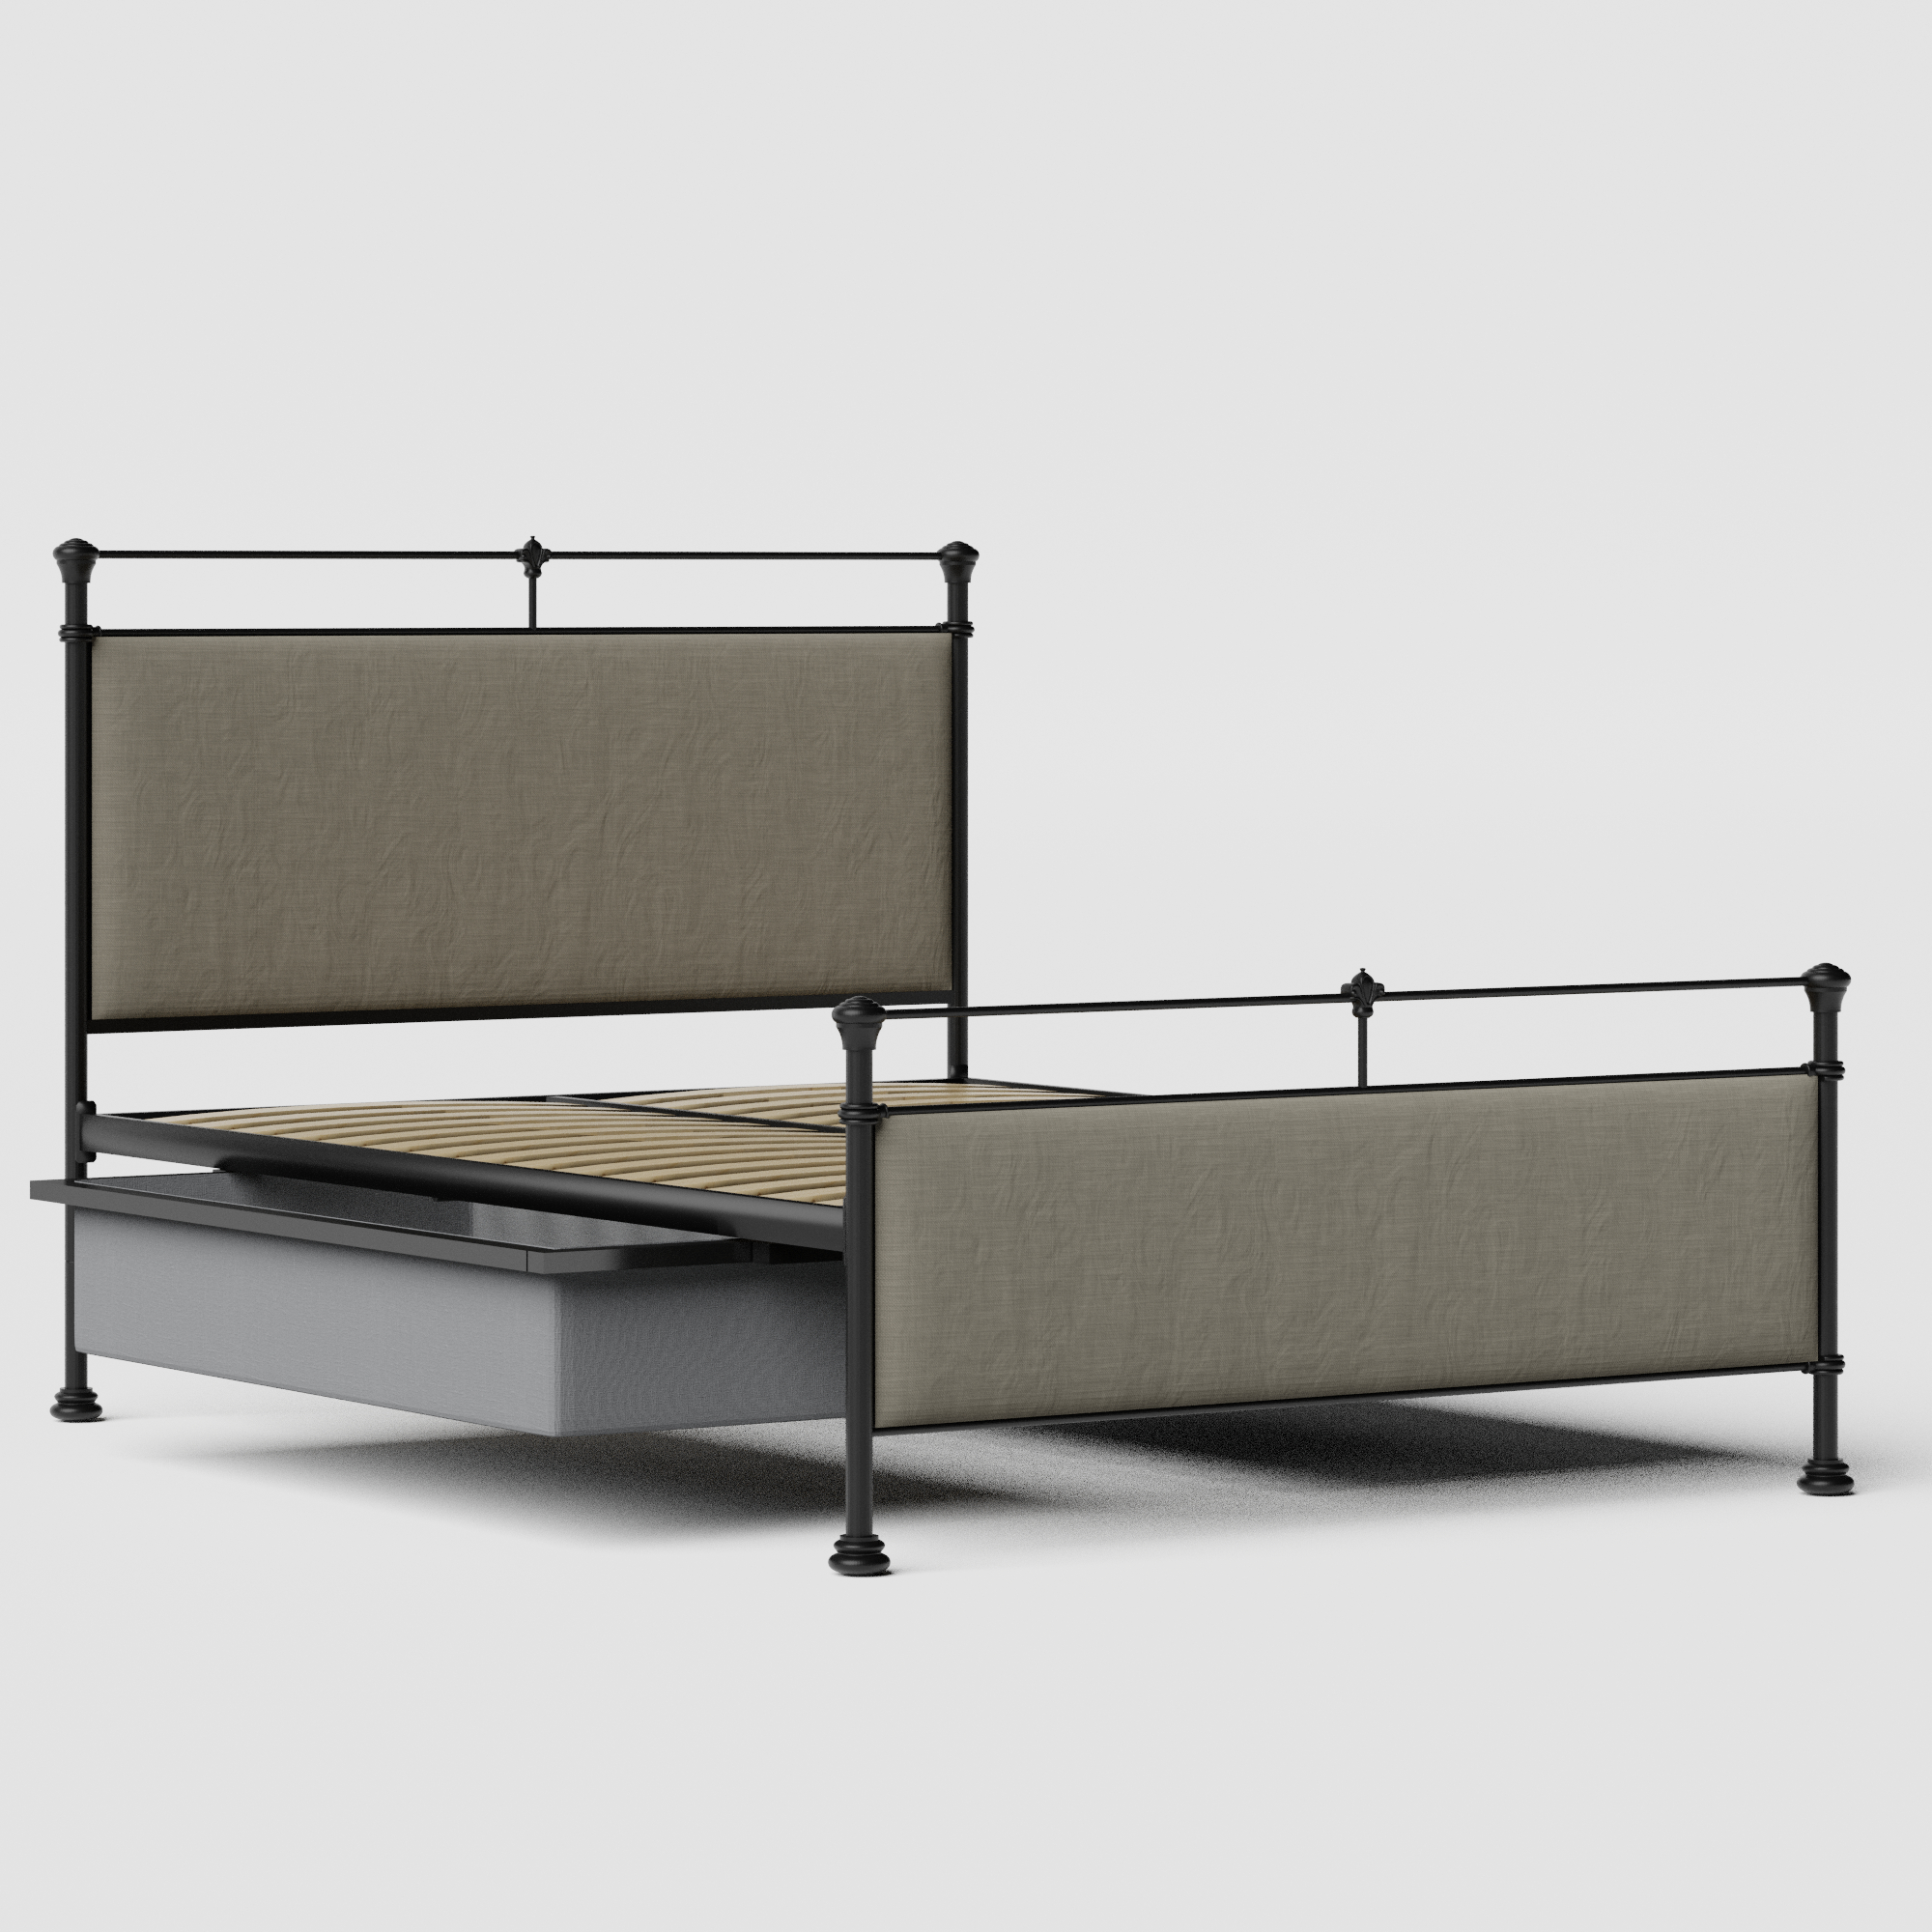 Nancy iron/metal upholstered bed in black with drawers